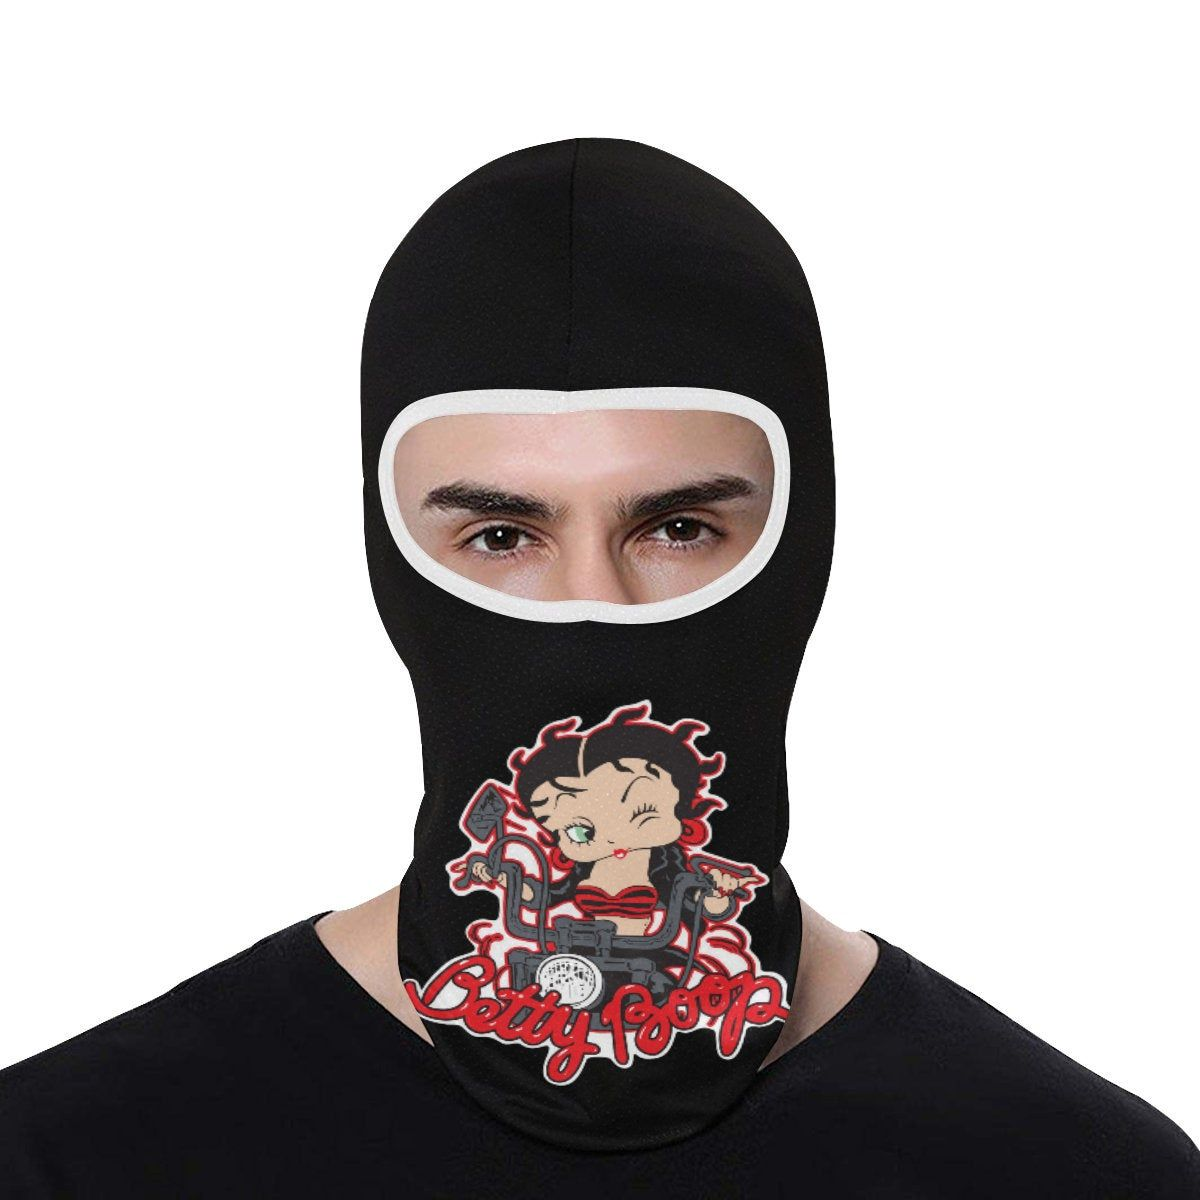 Betty boop full face mask cover cold weather accessories